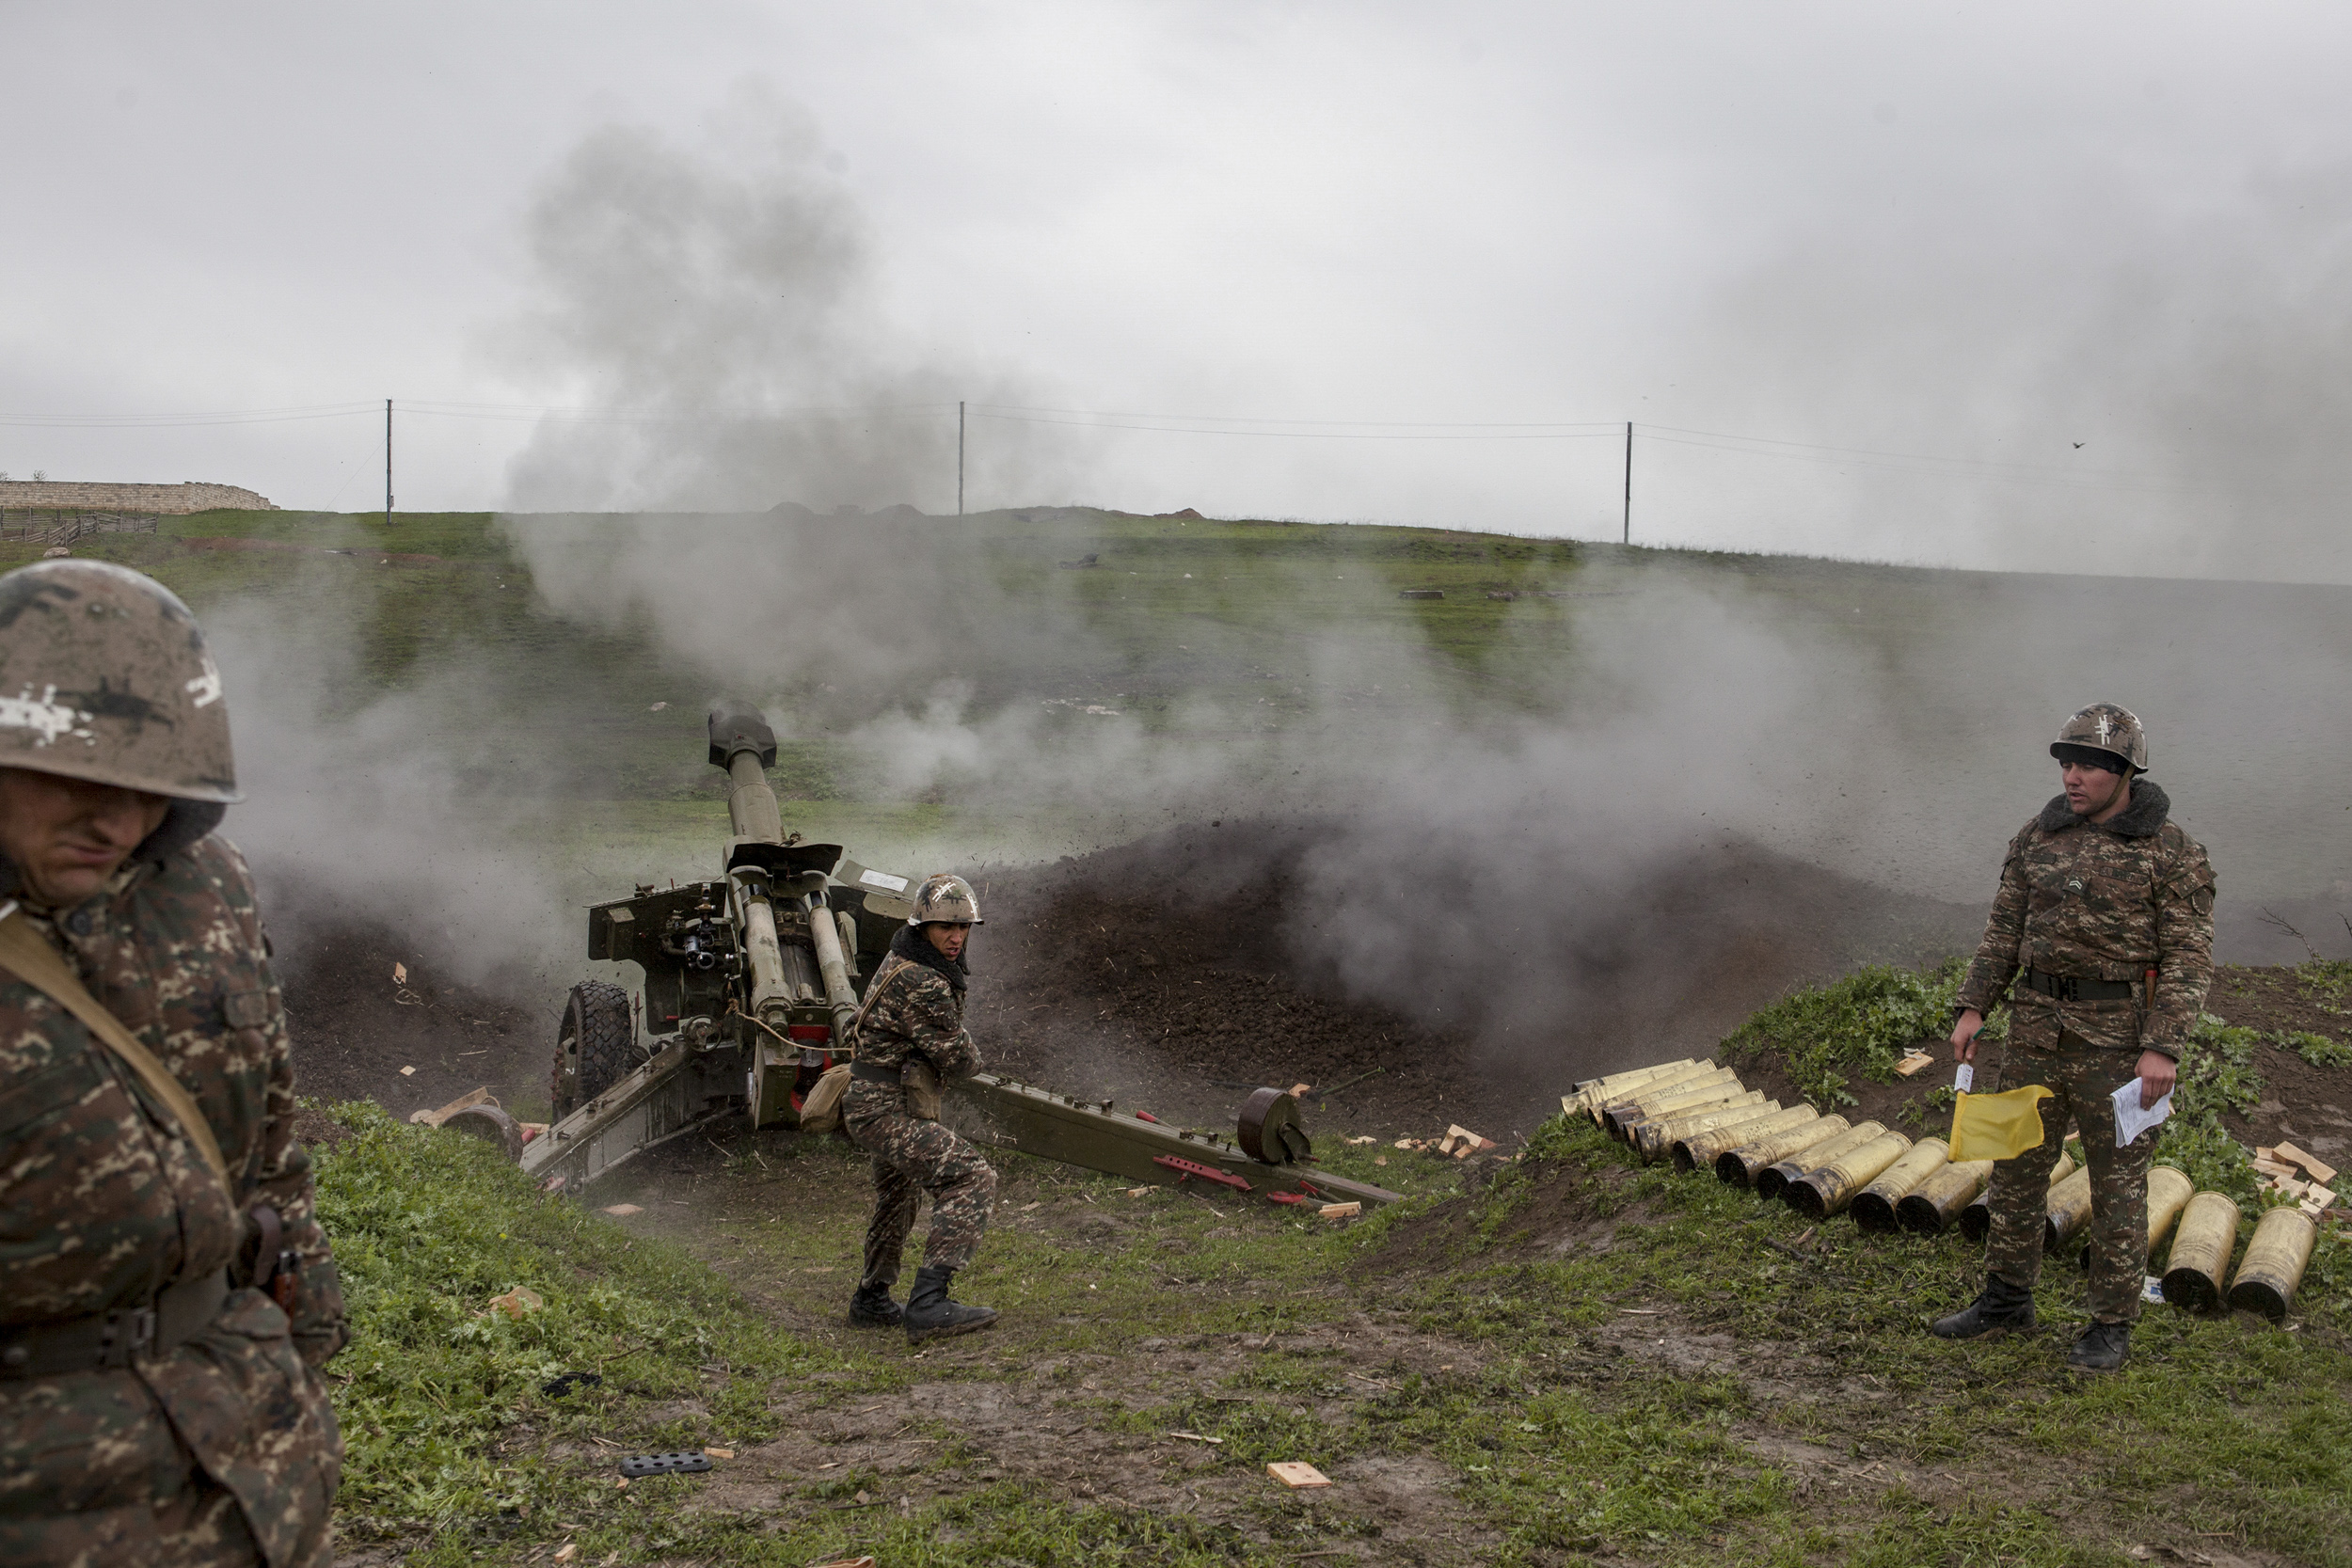 Nagorno-Karabakh is a landlocked mountainous region within Azerbajian populated and backed by neighboring Armenia. From 1988 to 1994 Azerbaijan and Armenia fought a bloody war, with more than 50,000 casualties, over the territory.